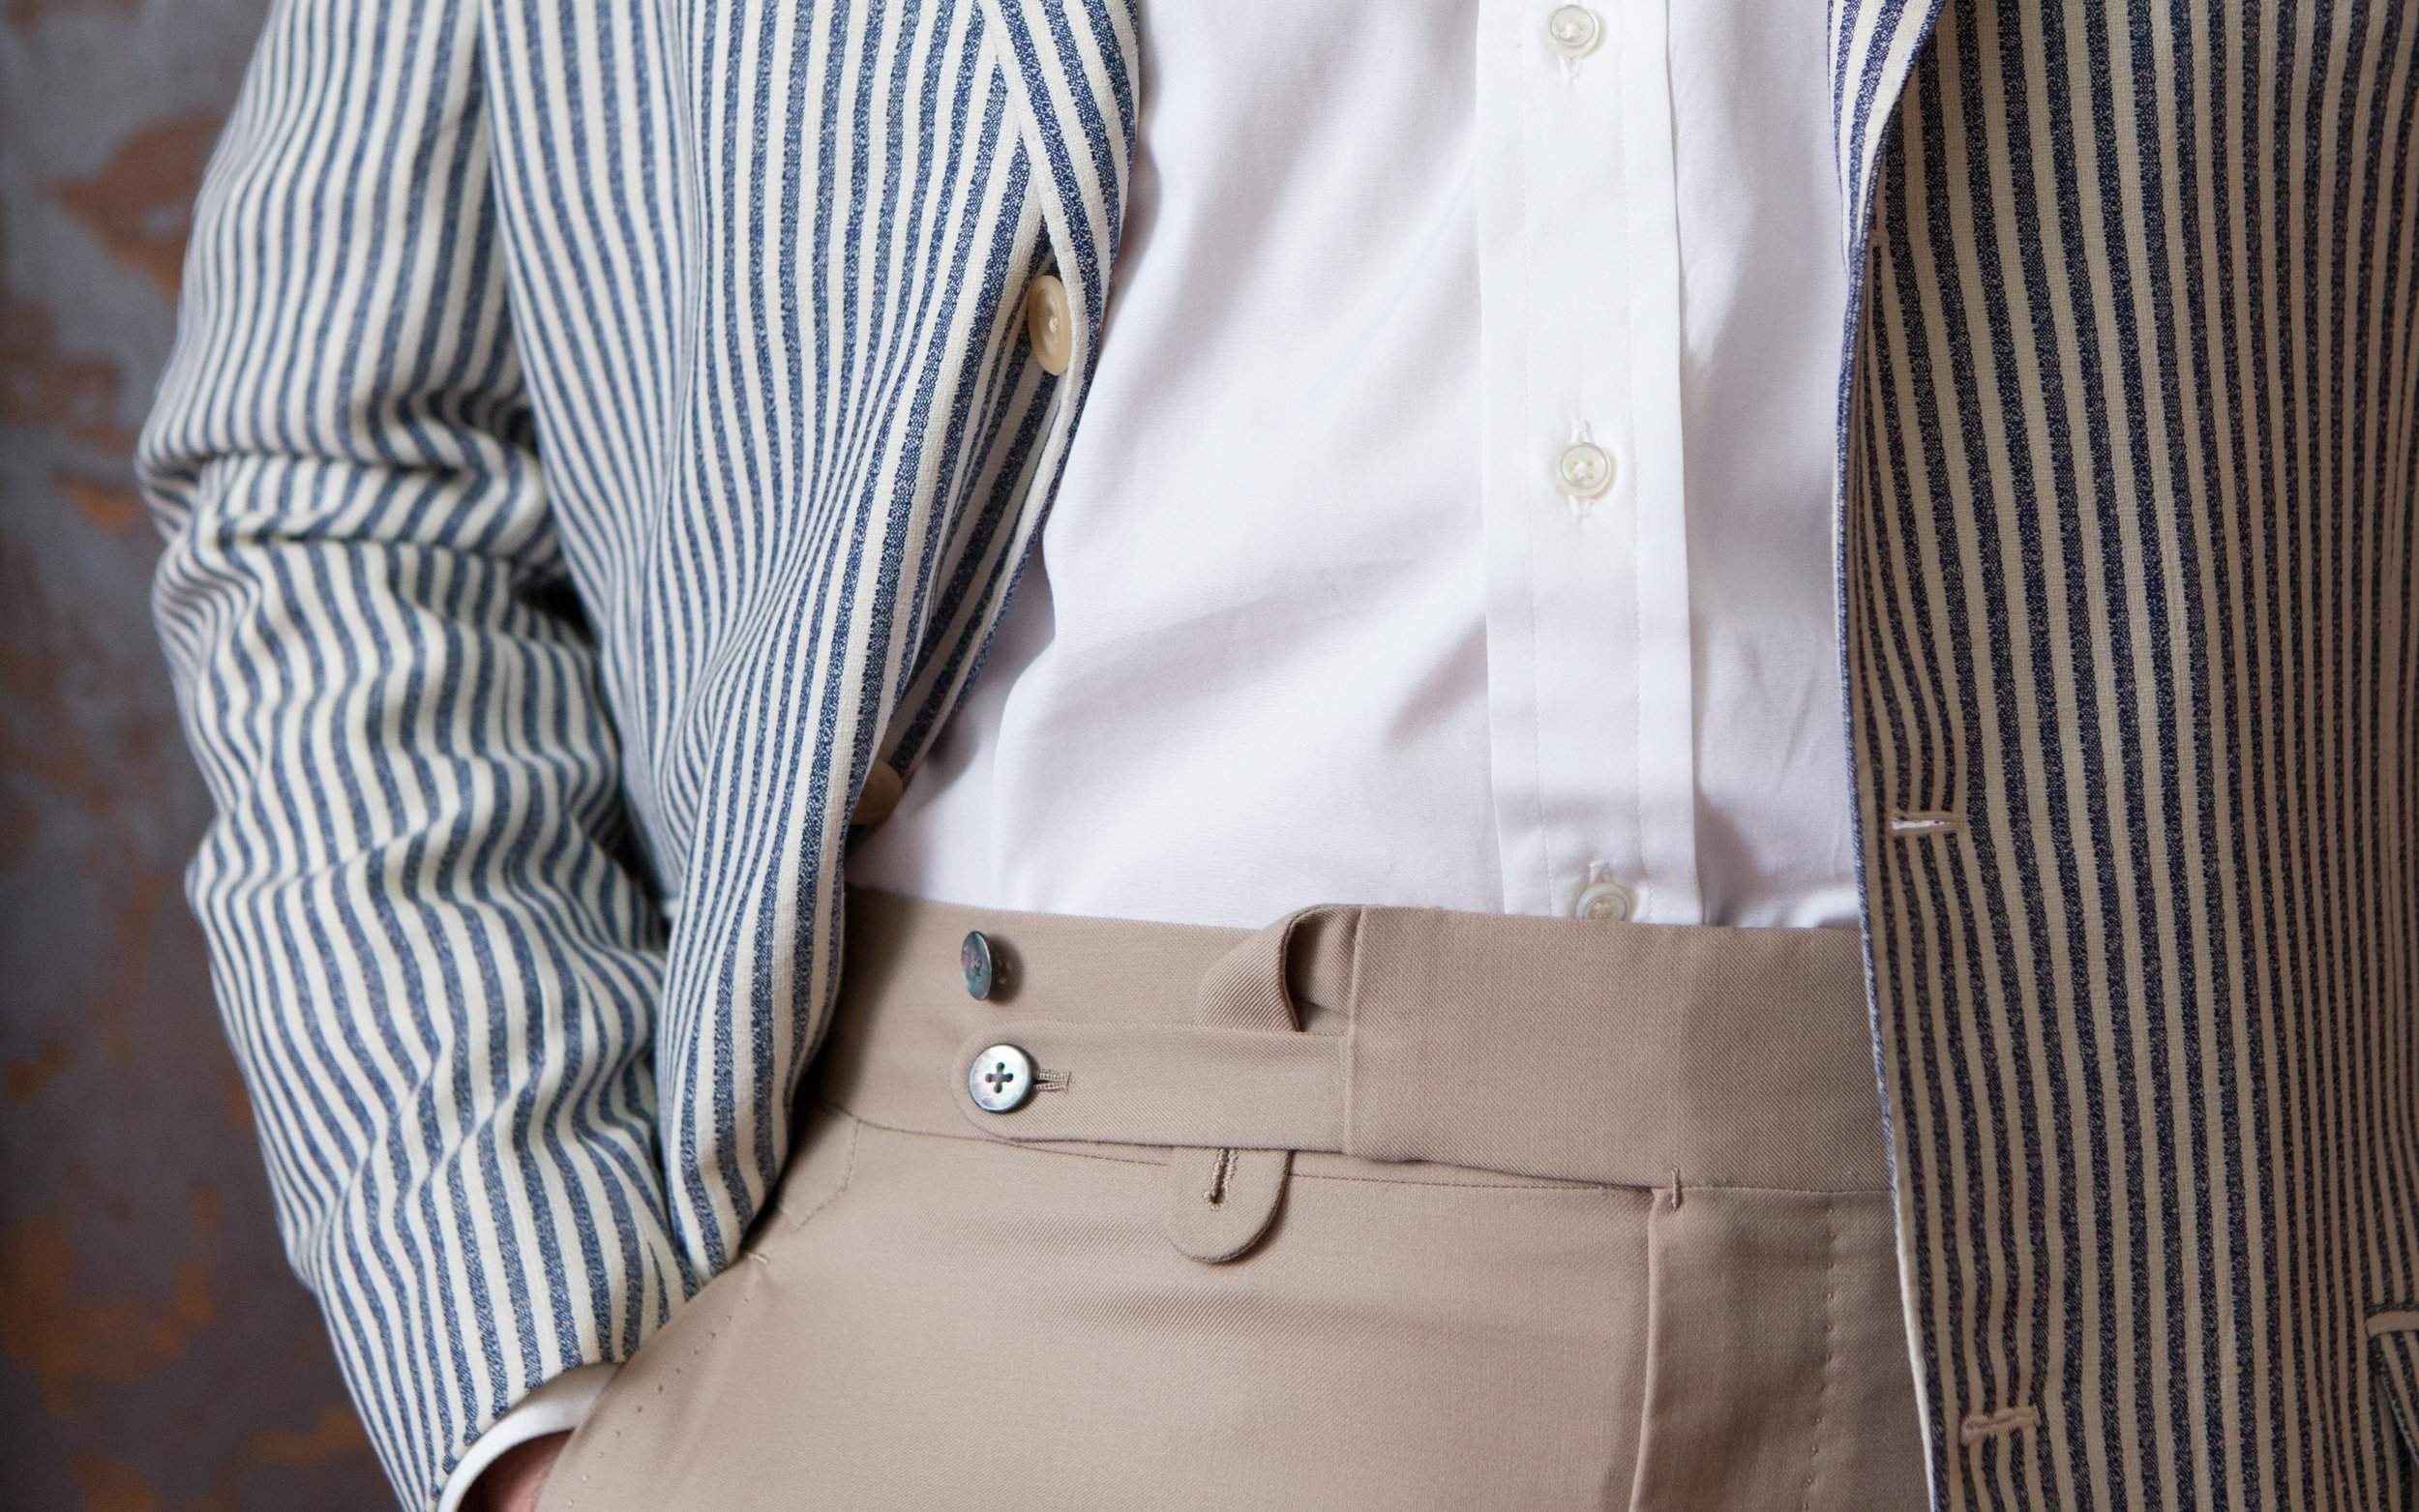 Our double extension tab waistband, resurrected for custom commissions this year from the Flusser archives.